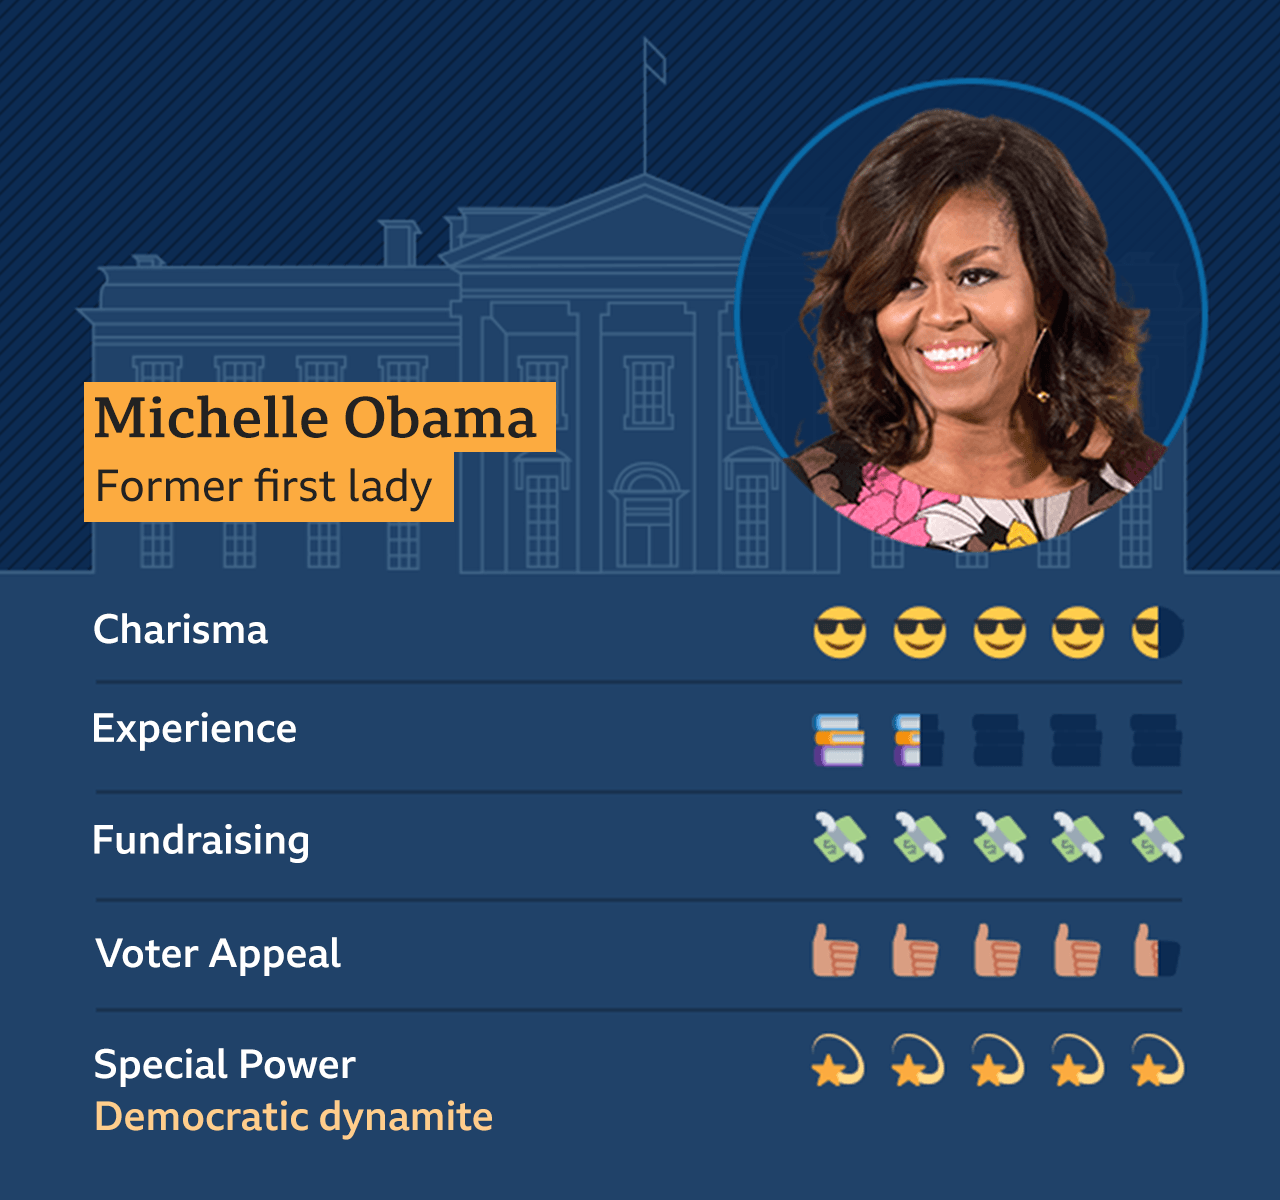 Graphic of Michelle Obama, former first lady: Charisma - 4.5, Experience - 1.5, Fundraising - 5, Voter appeal - 4.5, Special Power - Democratic dynamite - 5